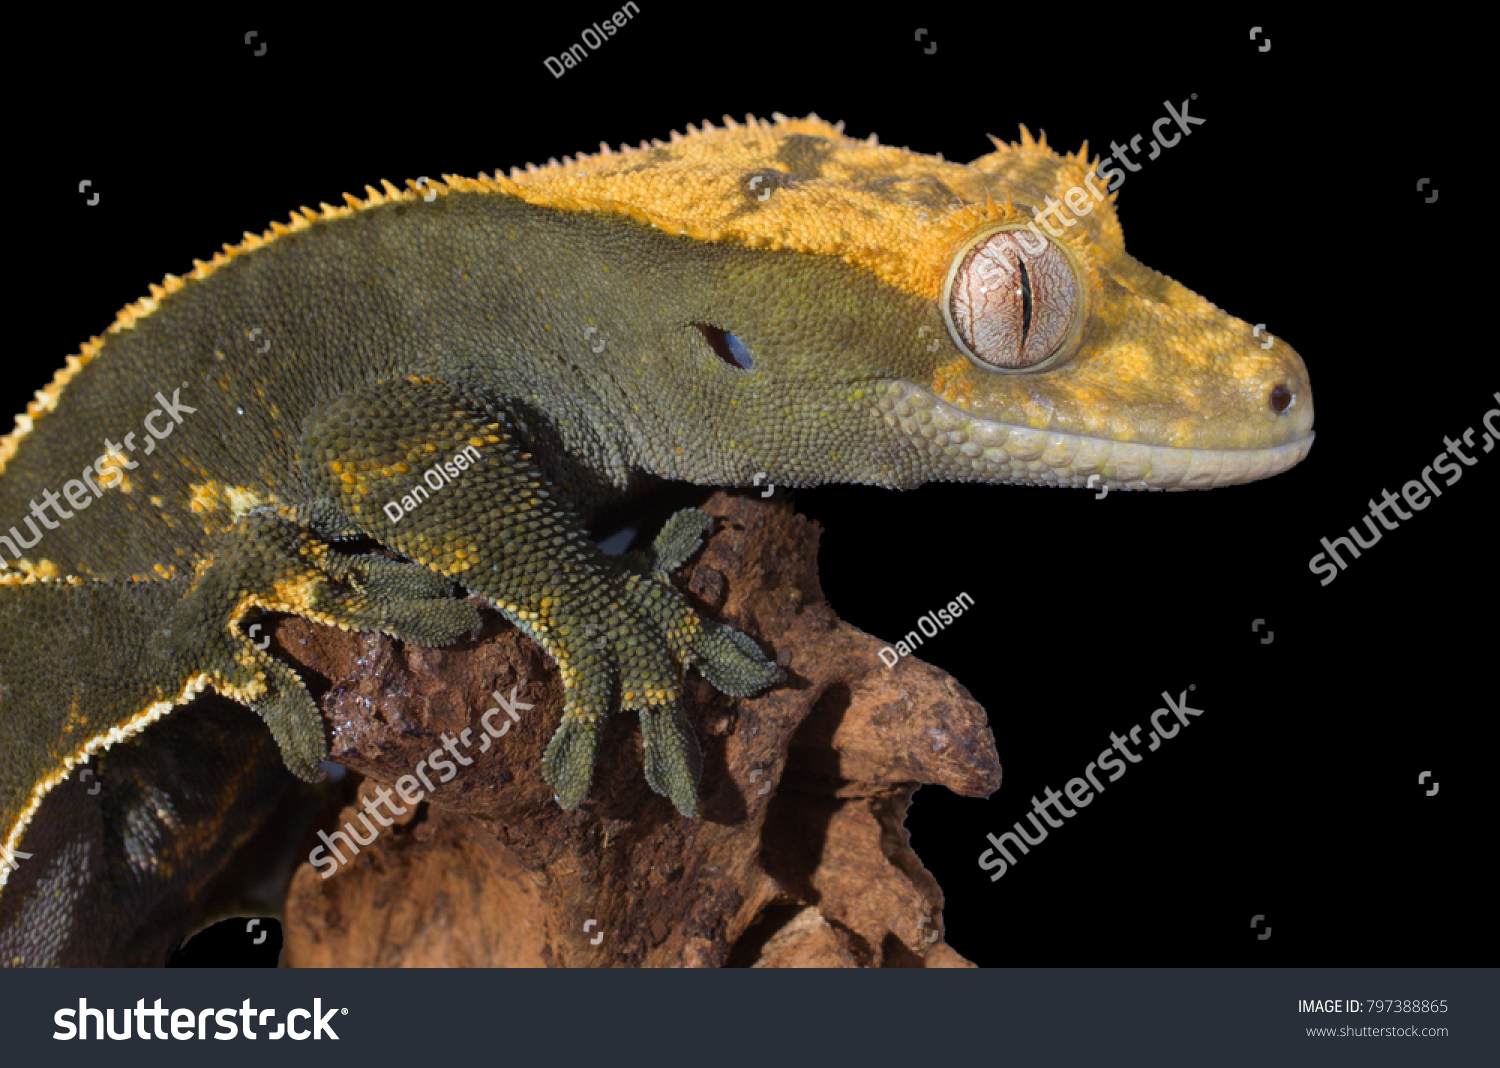 Cute Crested Gecko Called Eyelash Gecko Stock Photo Edit Now